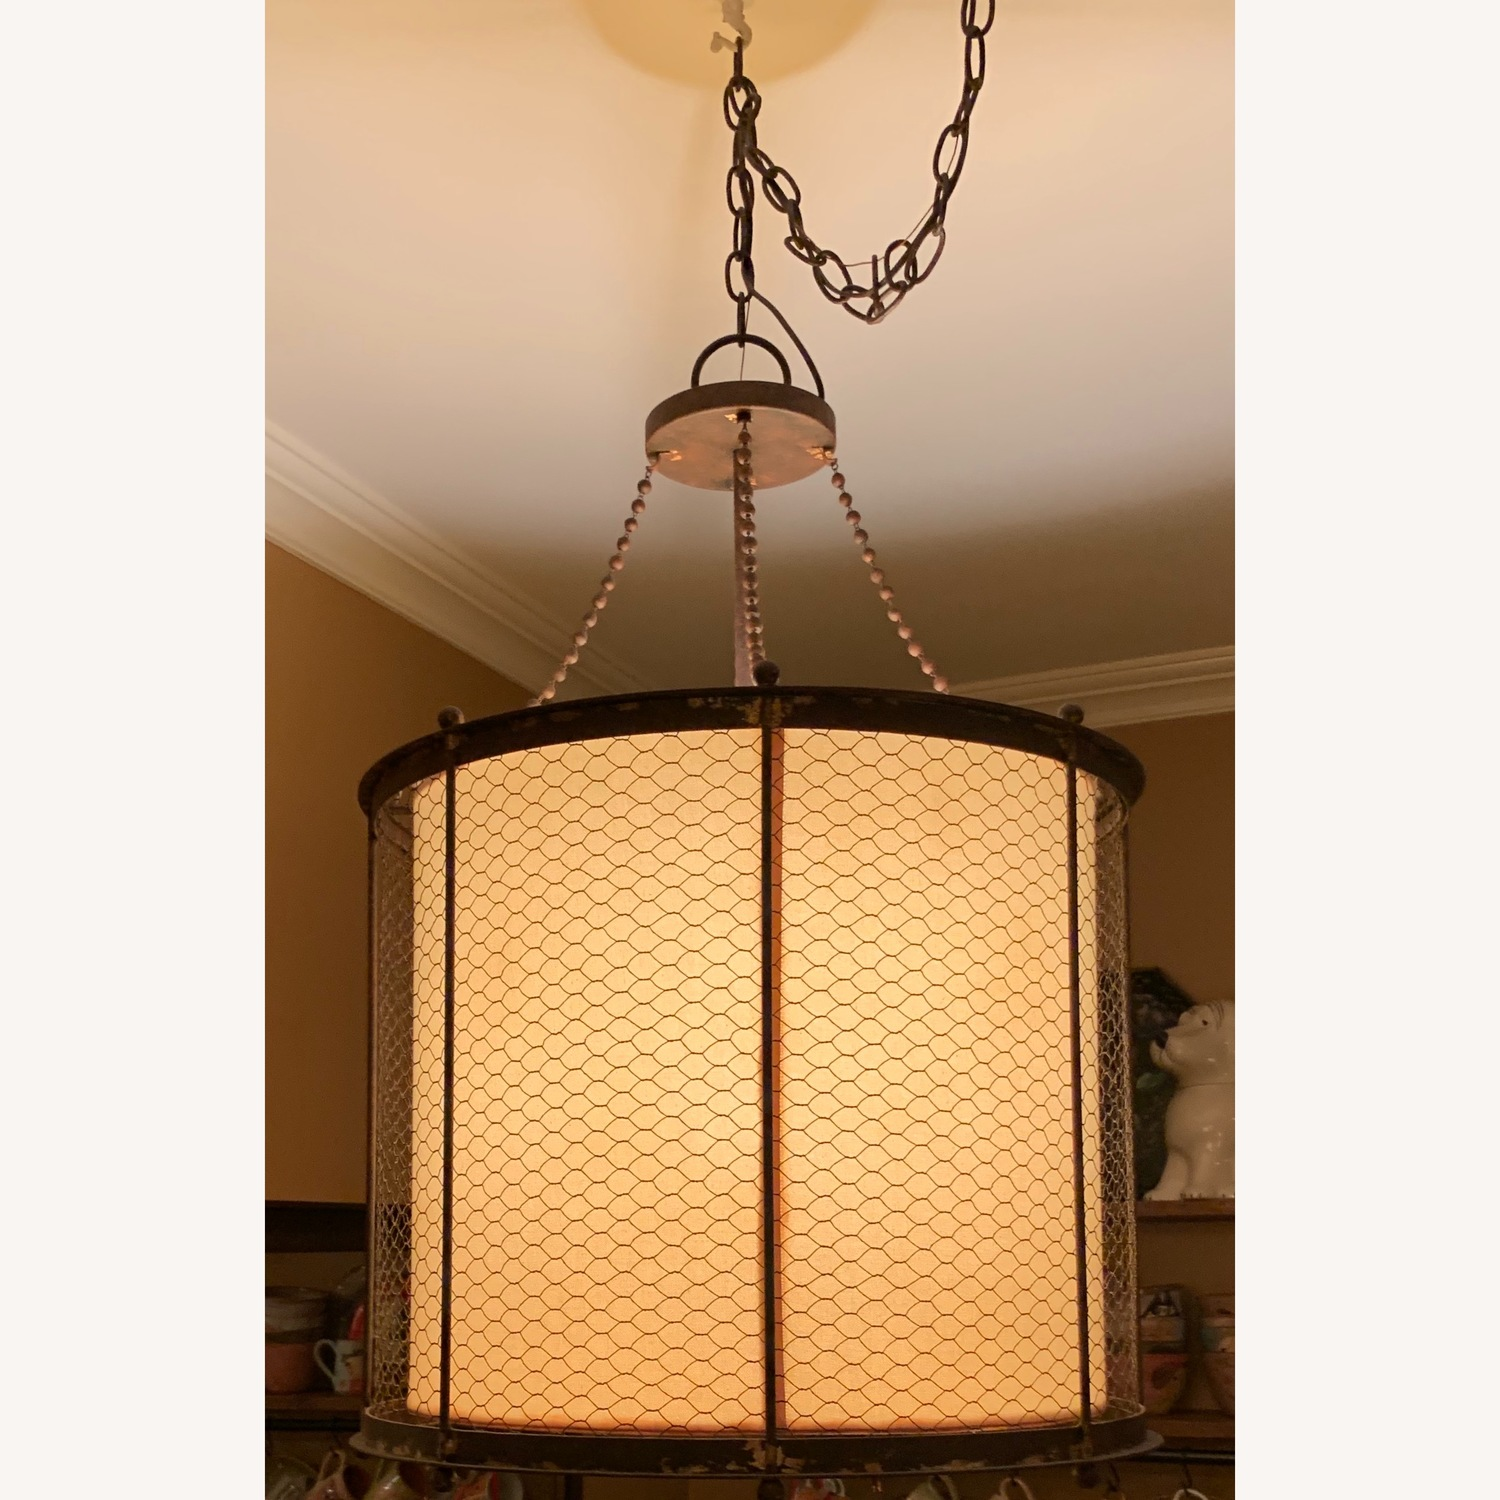 Ethan Allen Metal & Linen Barrel Ceiling Light - image-2